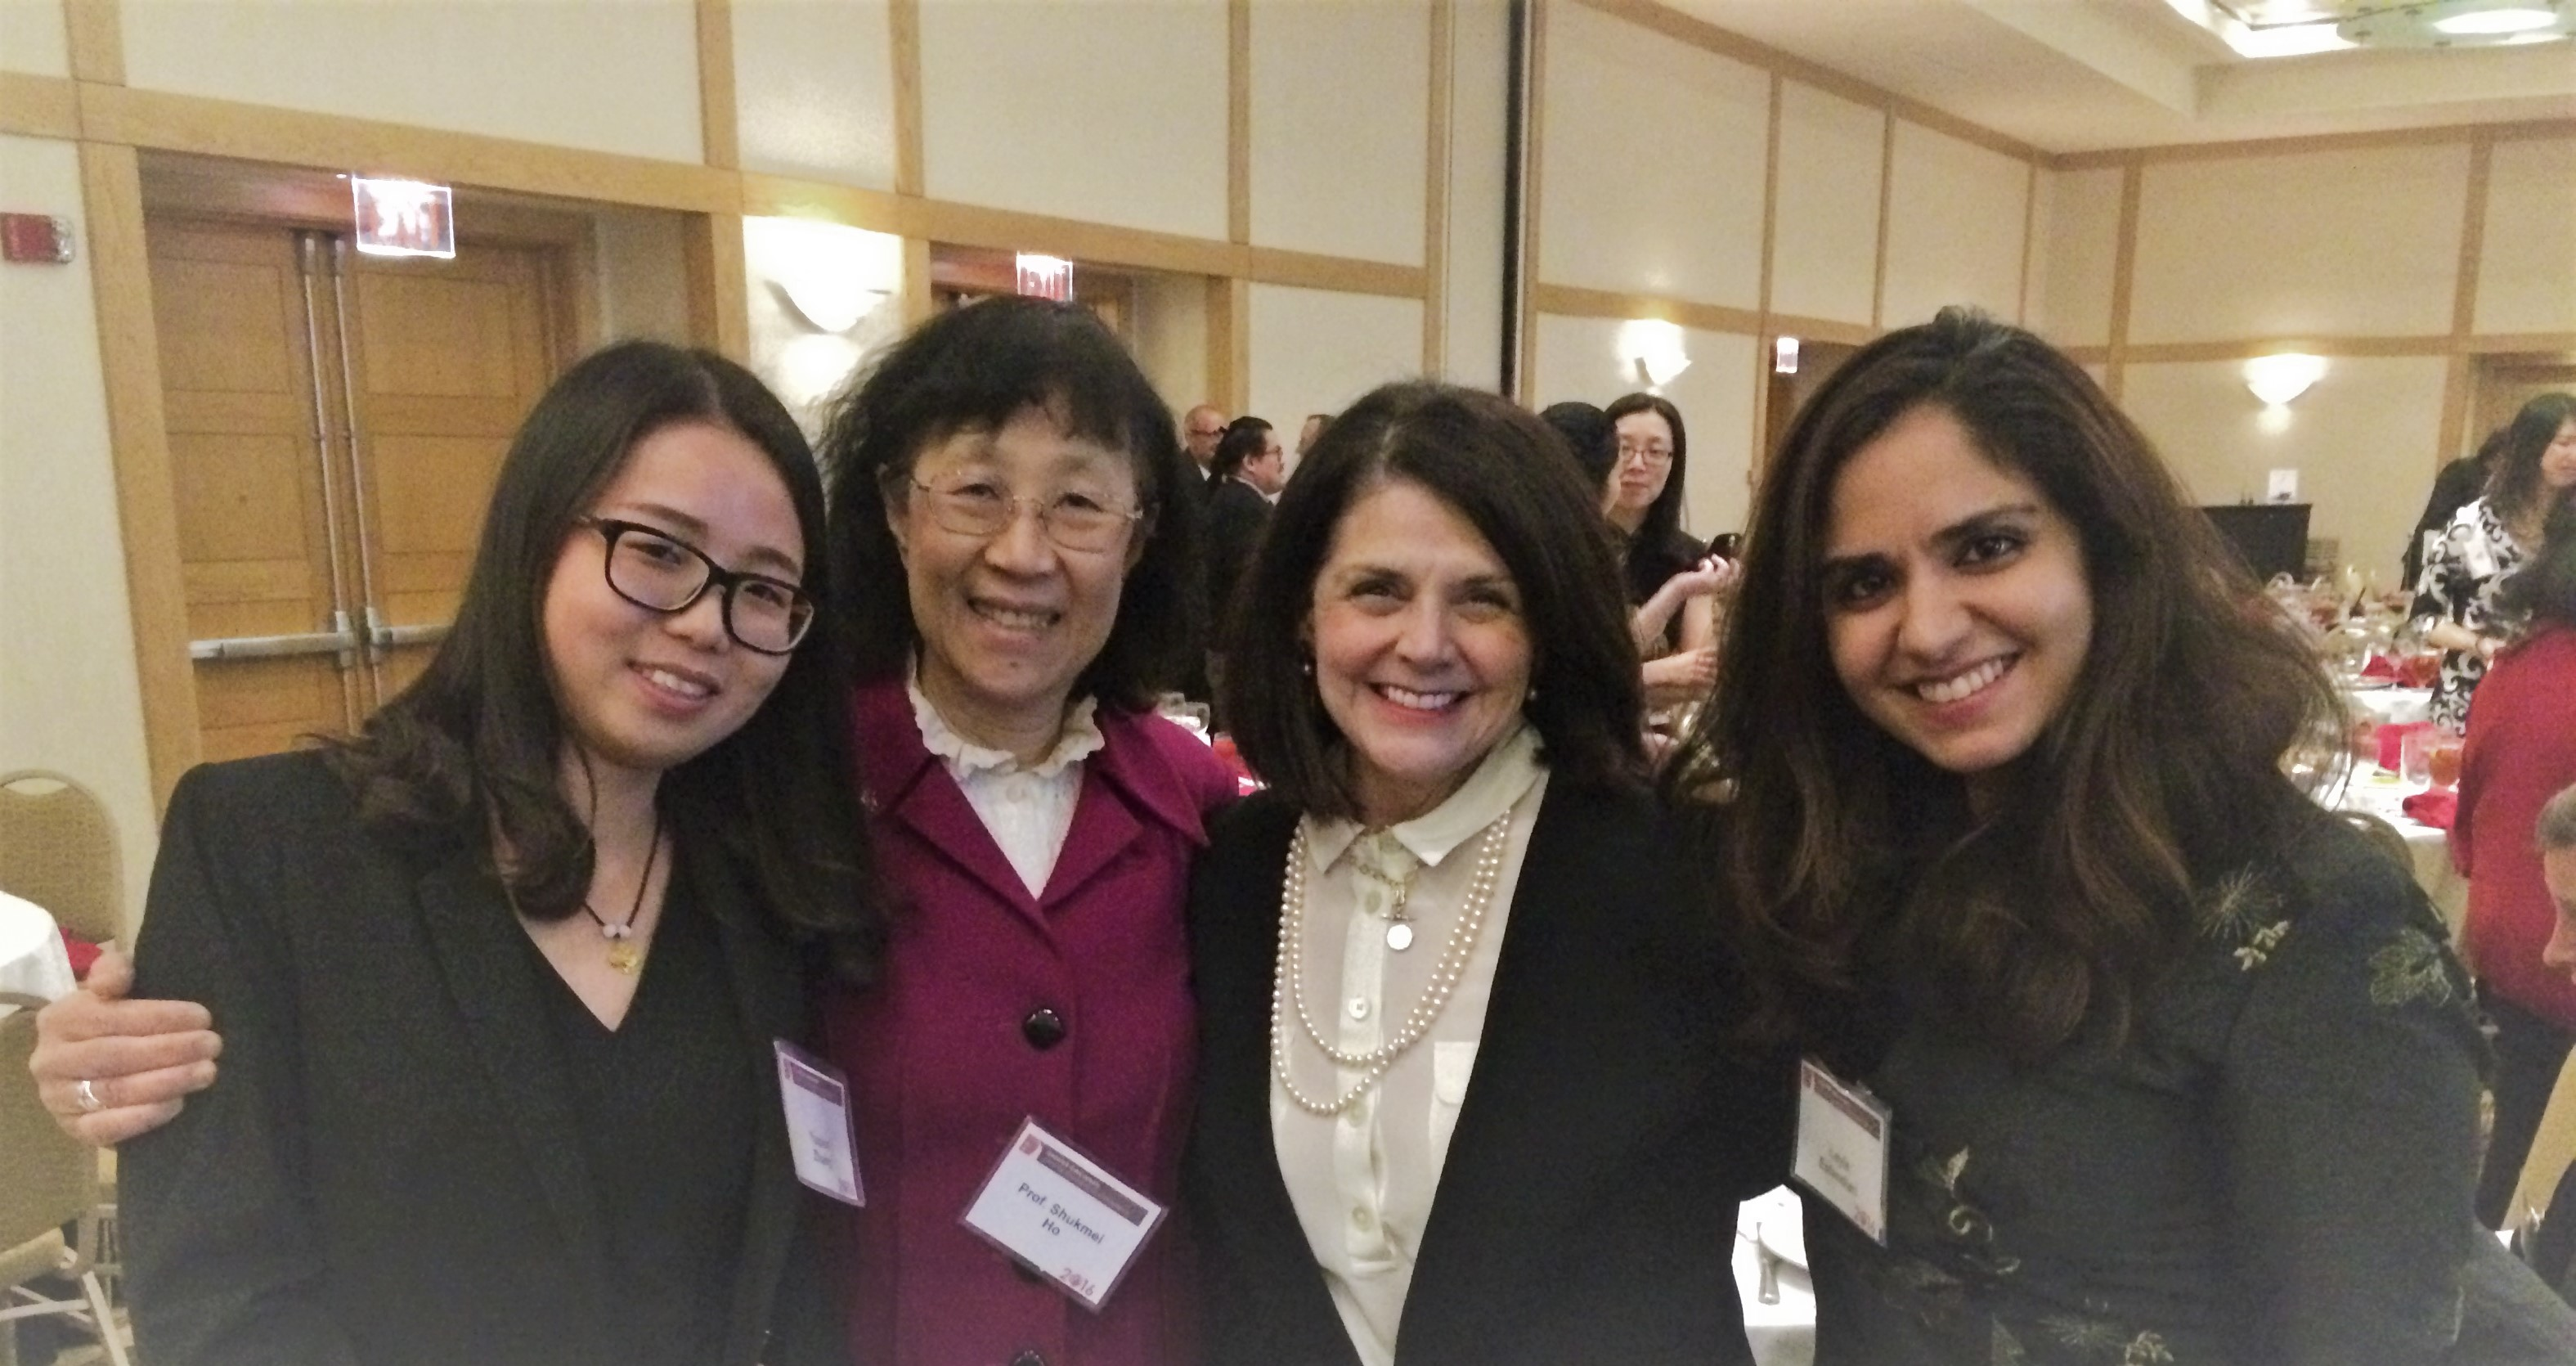 Meeting the former provost at Chinese New Year Celebration Event UC